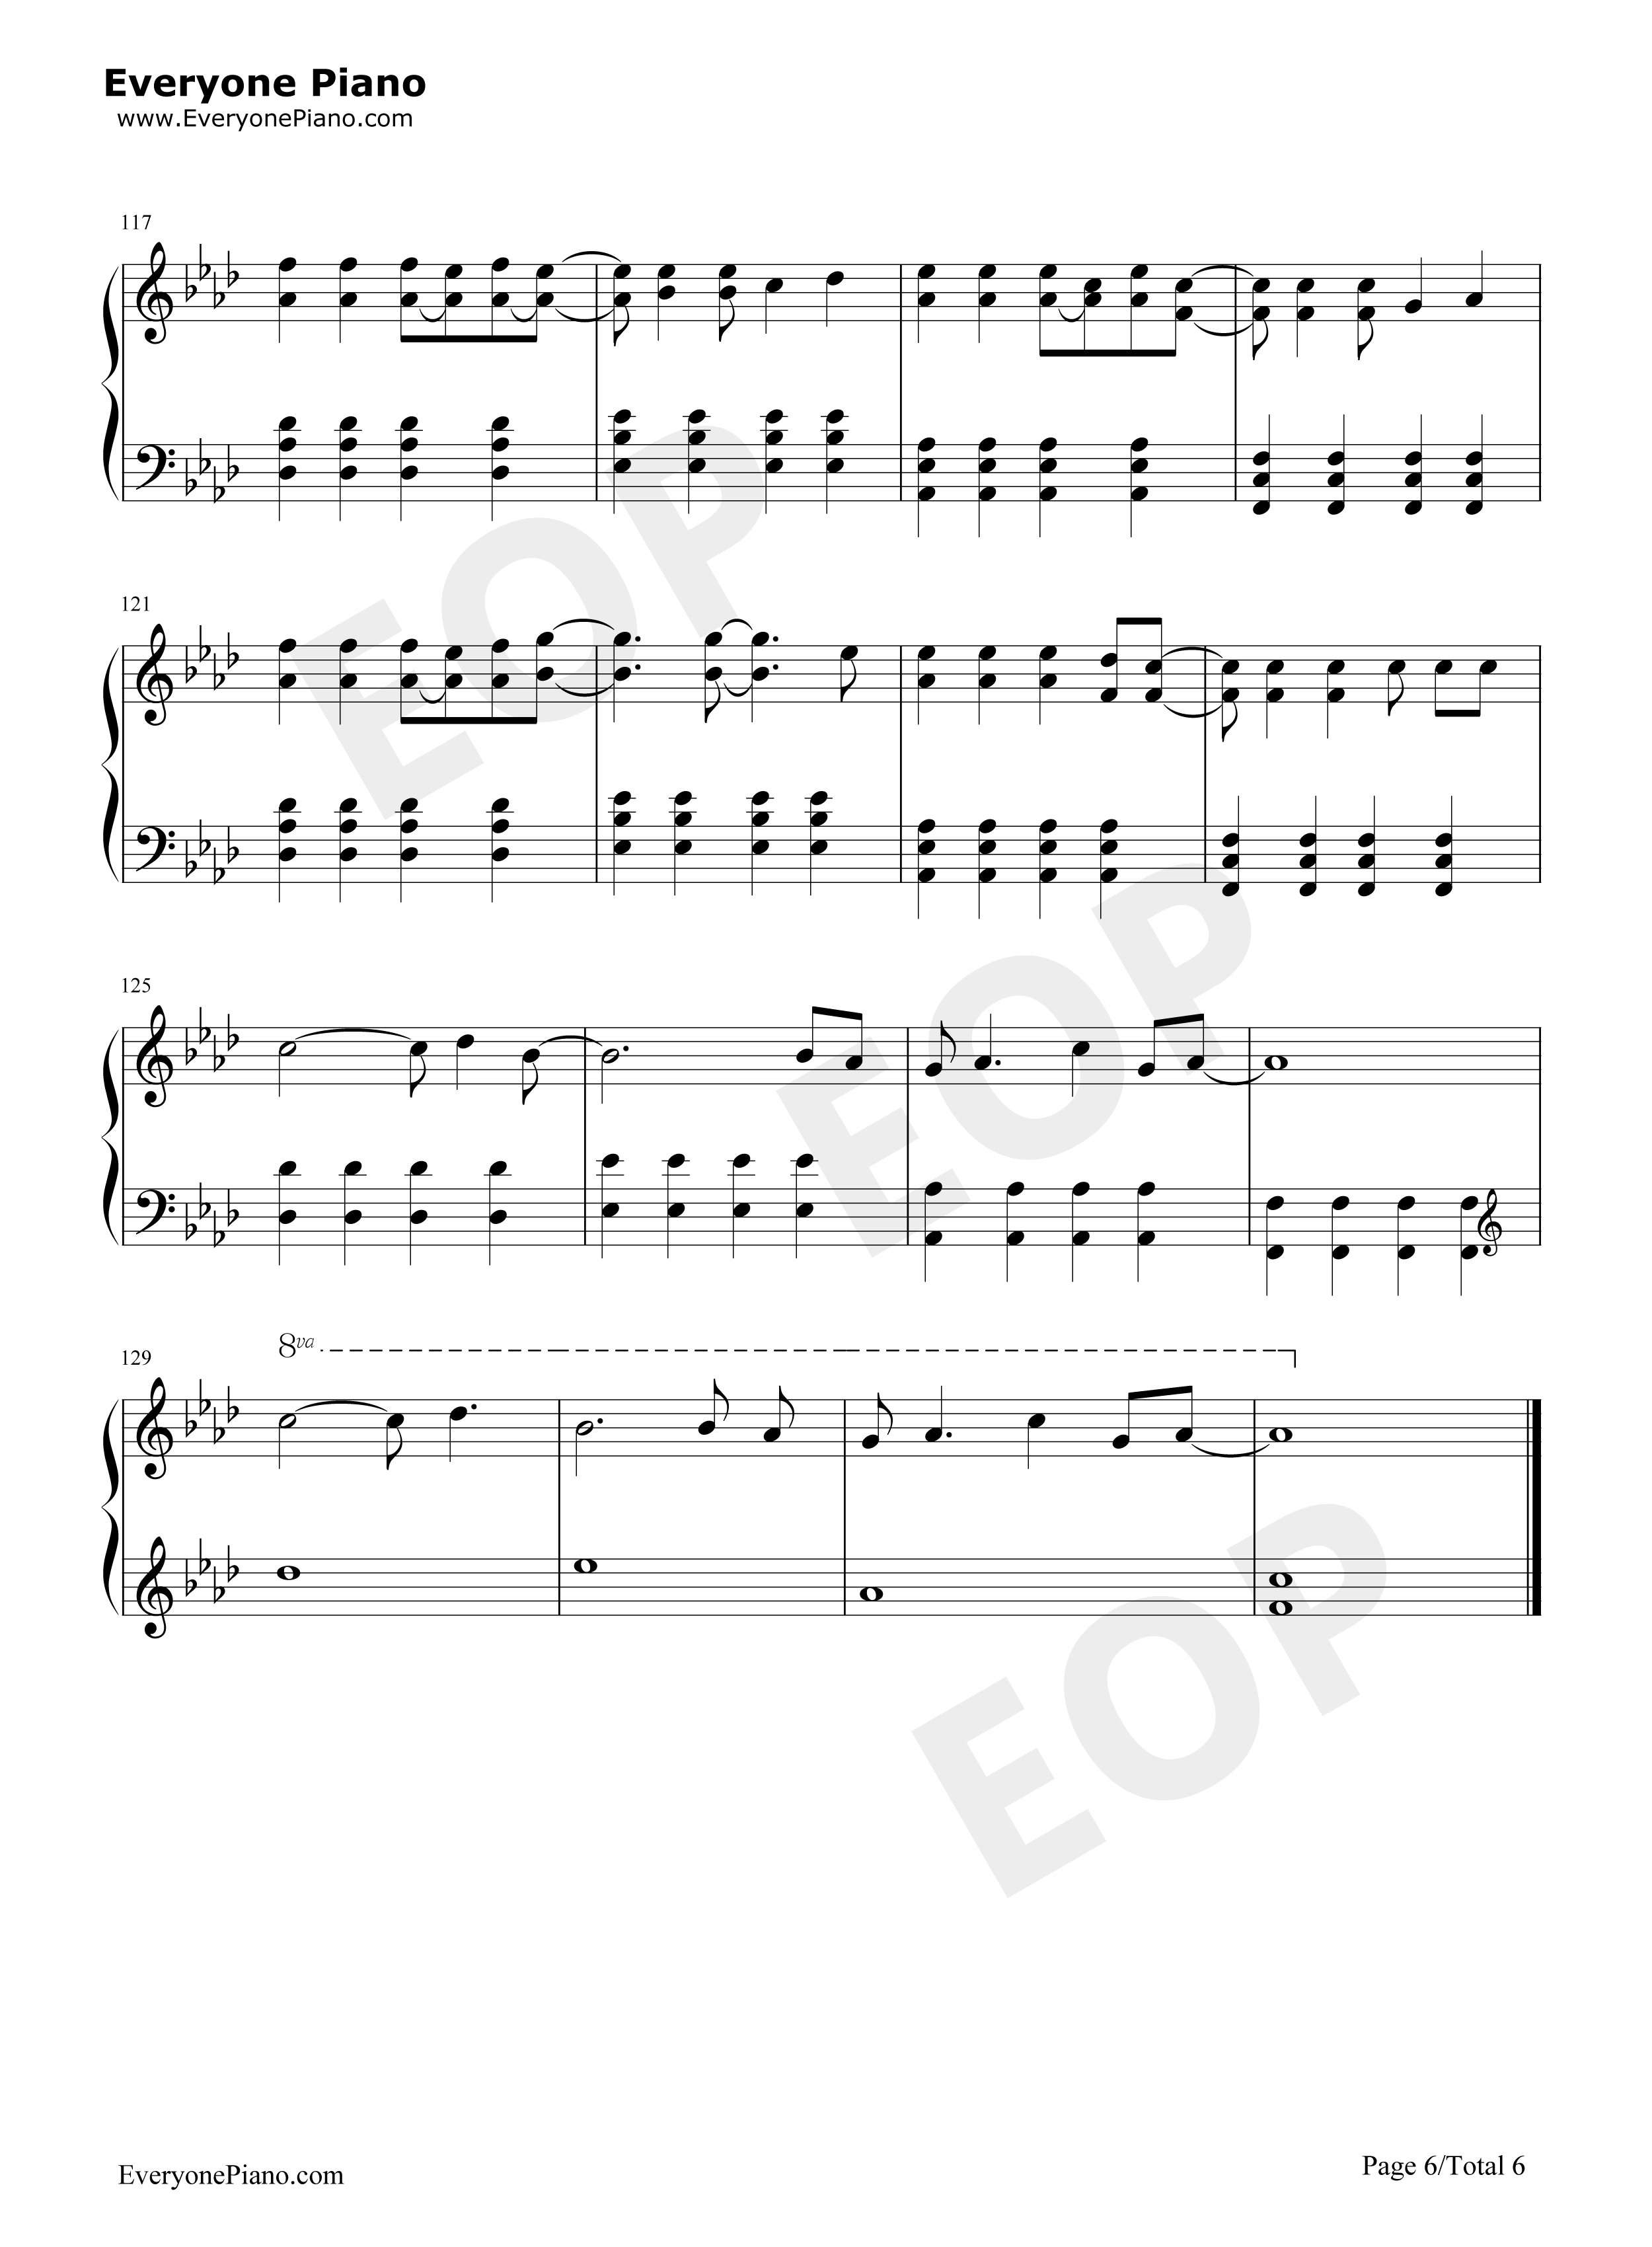 Viva La Vida Chords Viva La Vida Free Piano Sheet Music Piano Chords